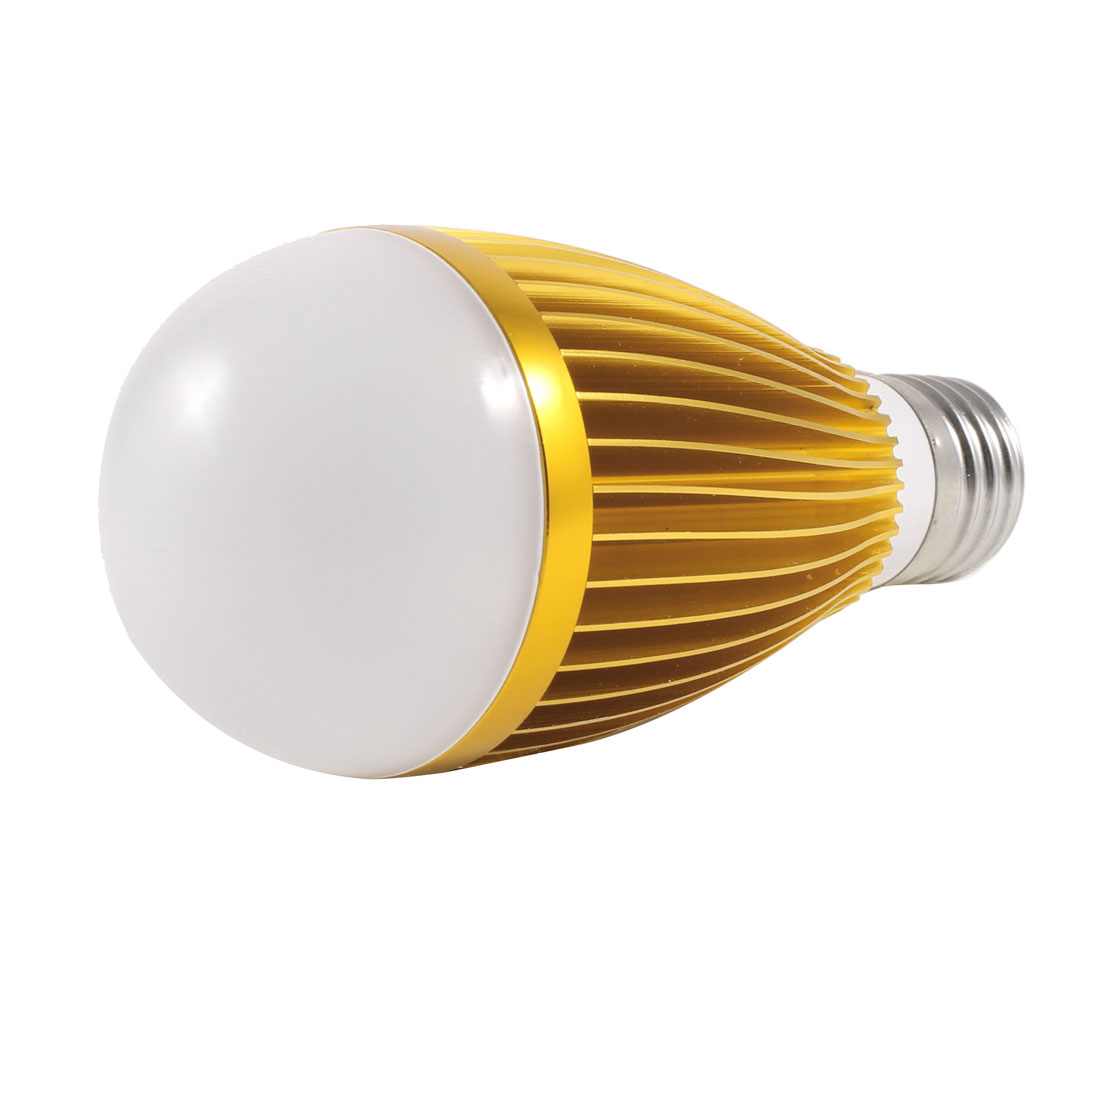 Gold Tone Housing E27 Socket White LED Light Ball Bulb Lamp 7W AC 220V